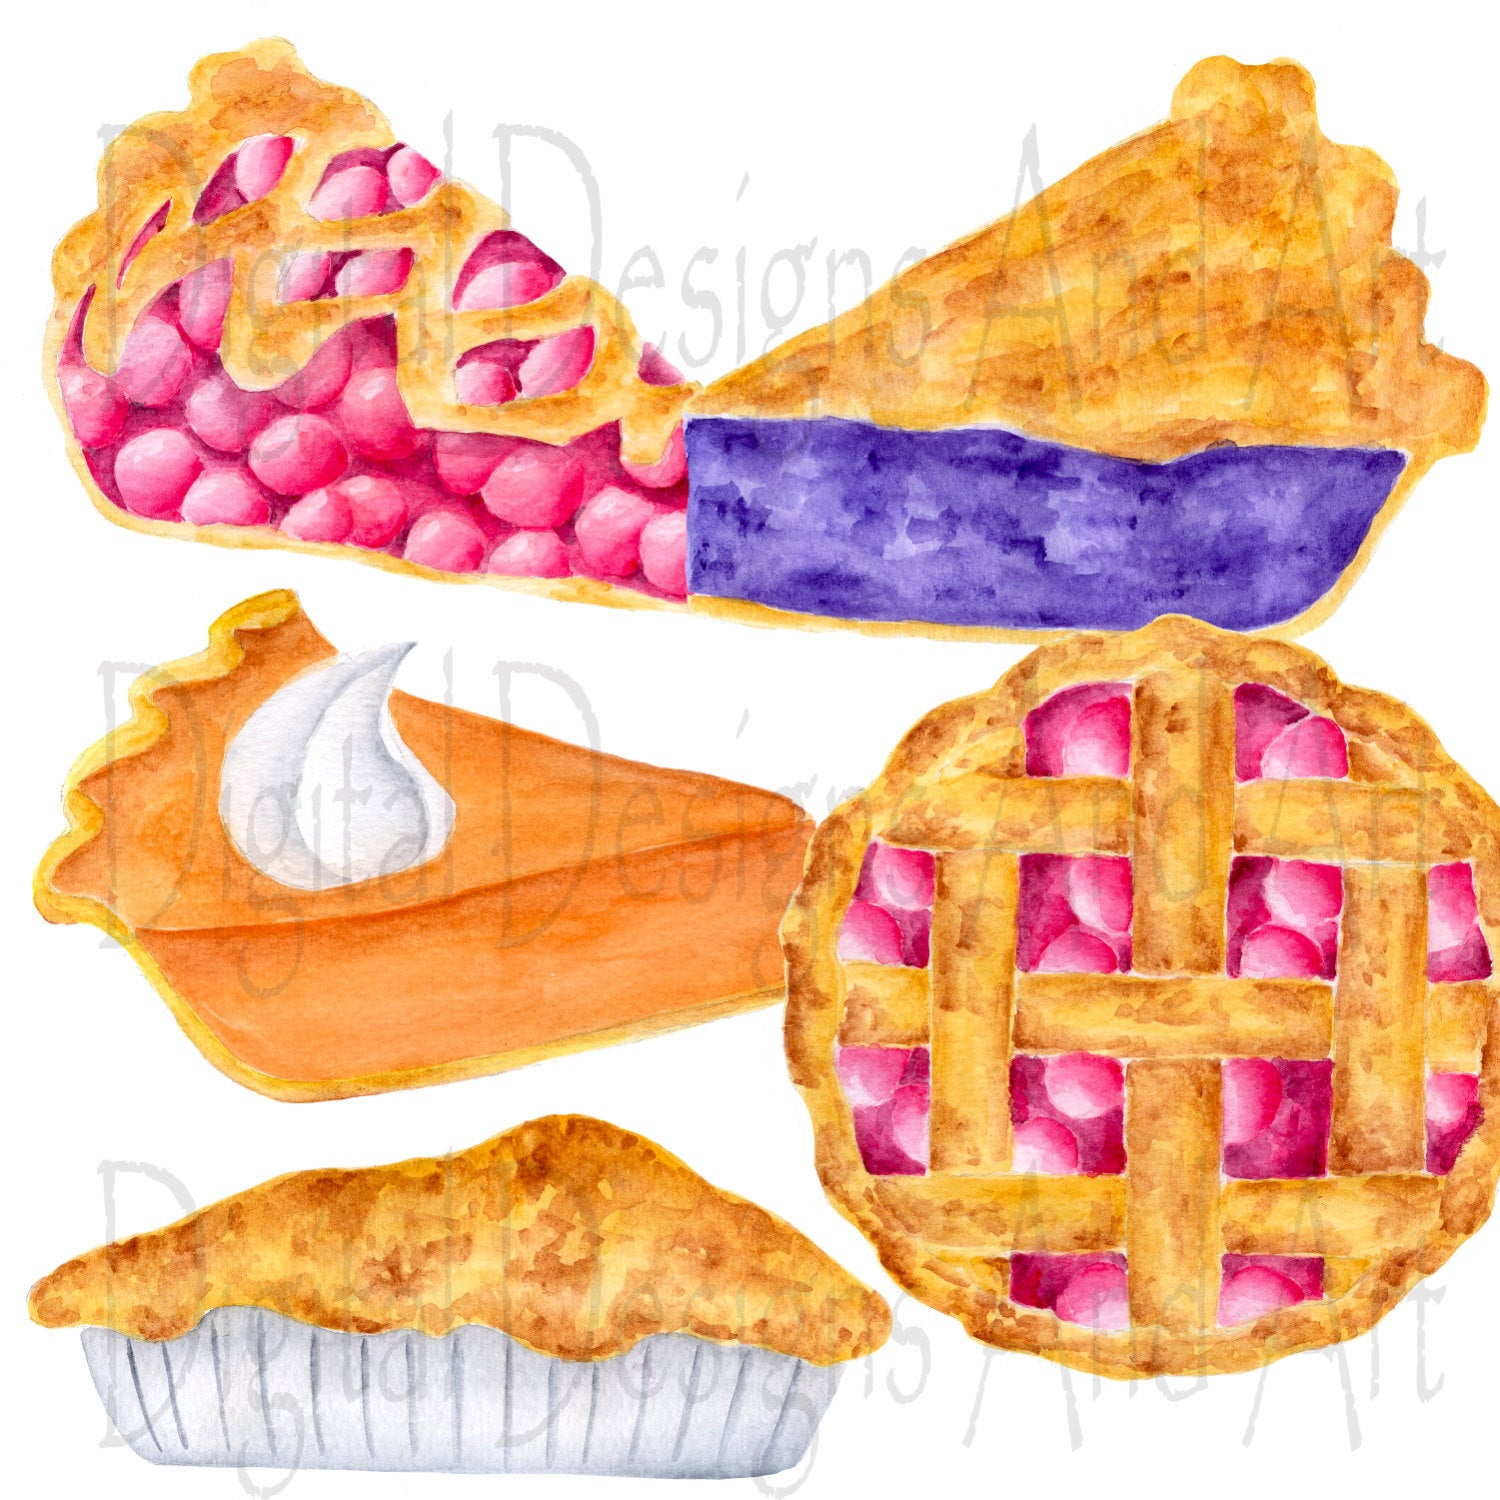 Watercolor pie clipart, Pies clipart, Watercolor clipart, Cherry pie  illustration, Food clipart, Watercolor food art, Food illustrations.